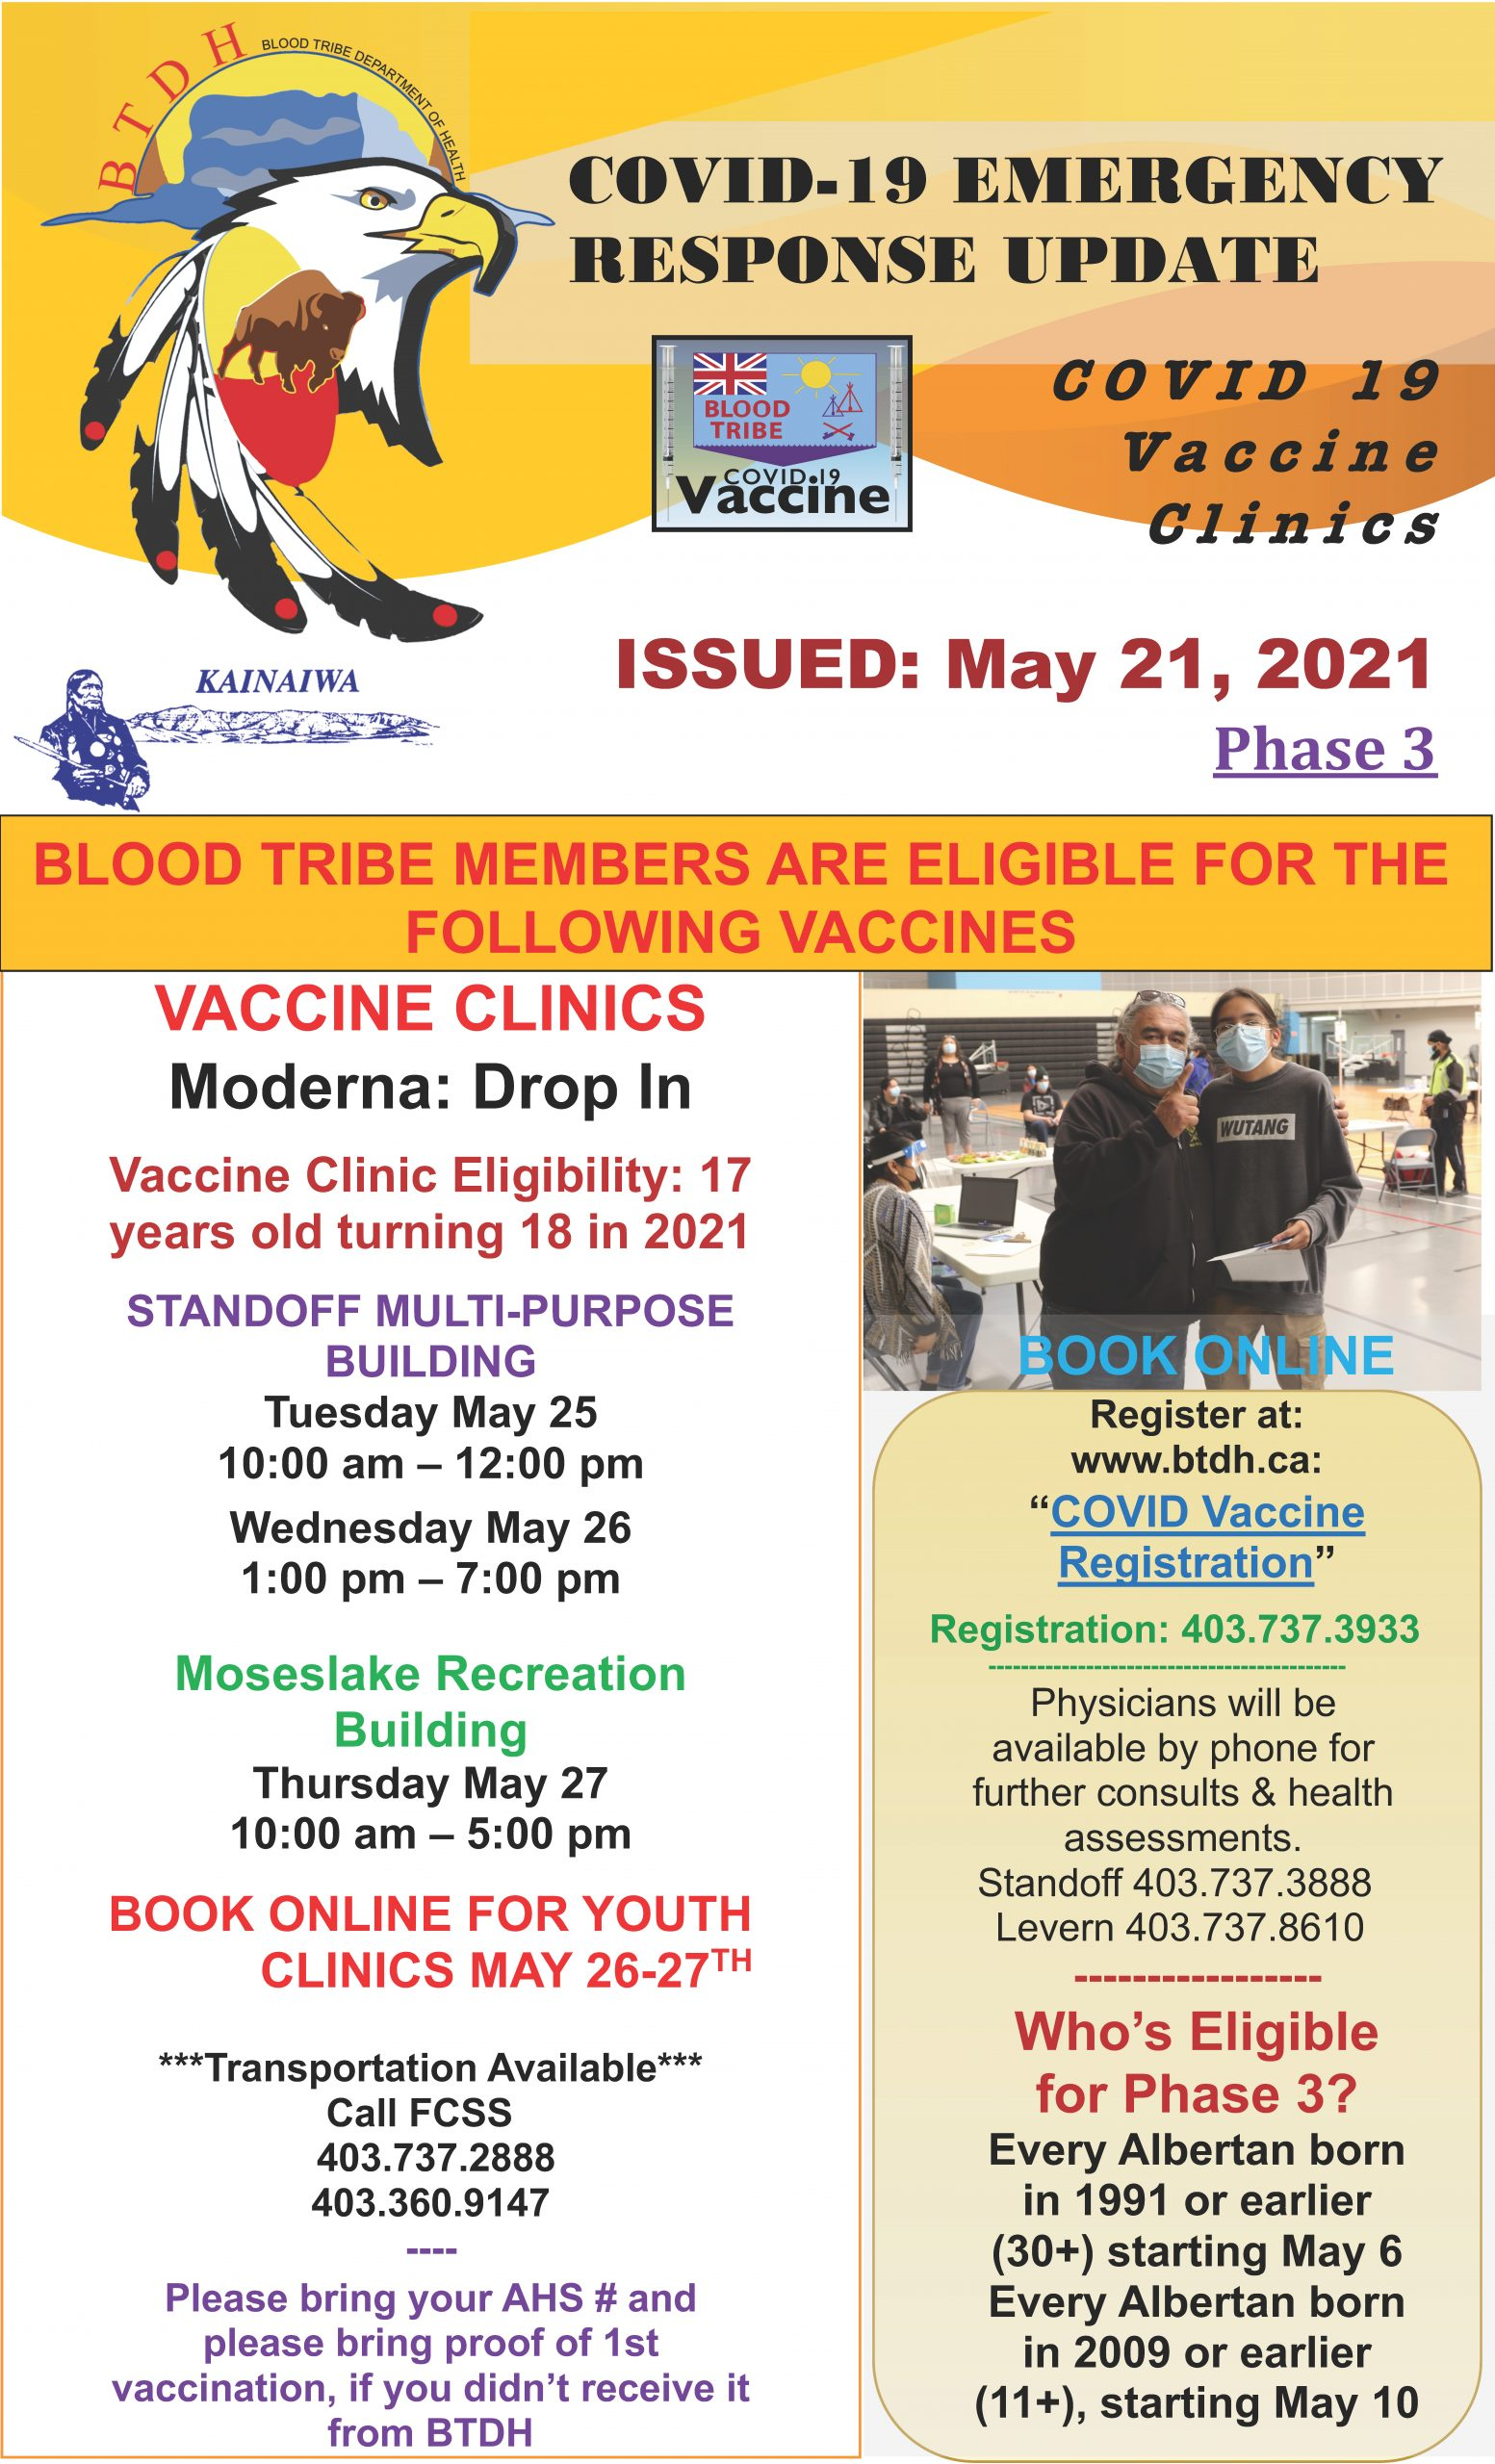 COVID-19 Vaccine Clinic Update - May 21, 2021